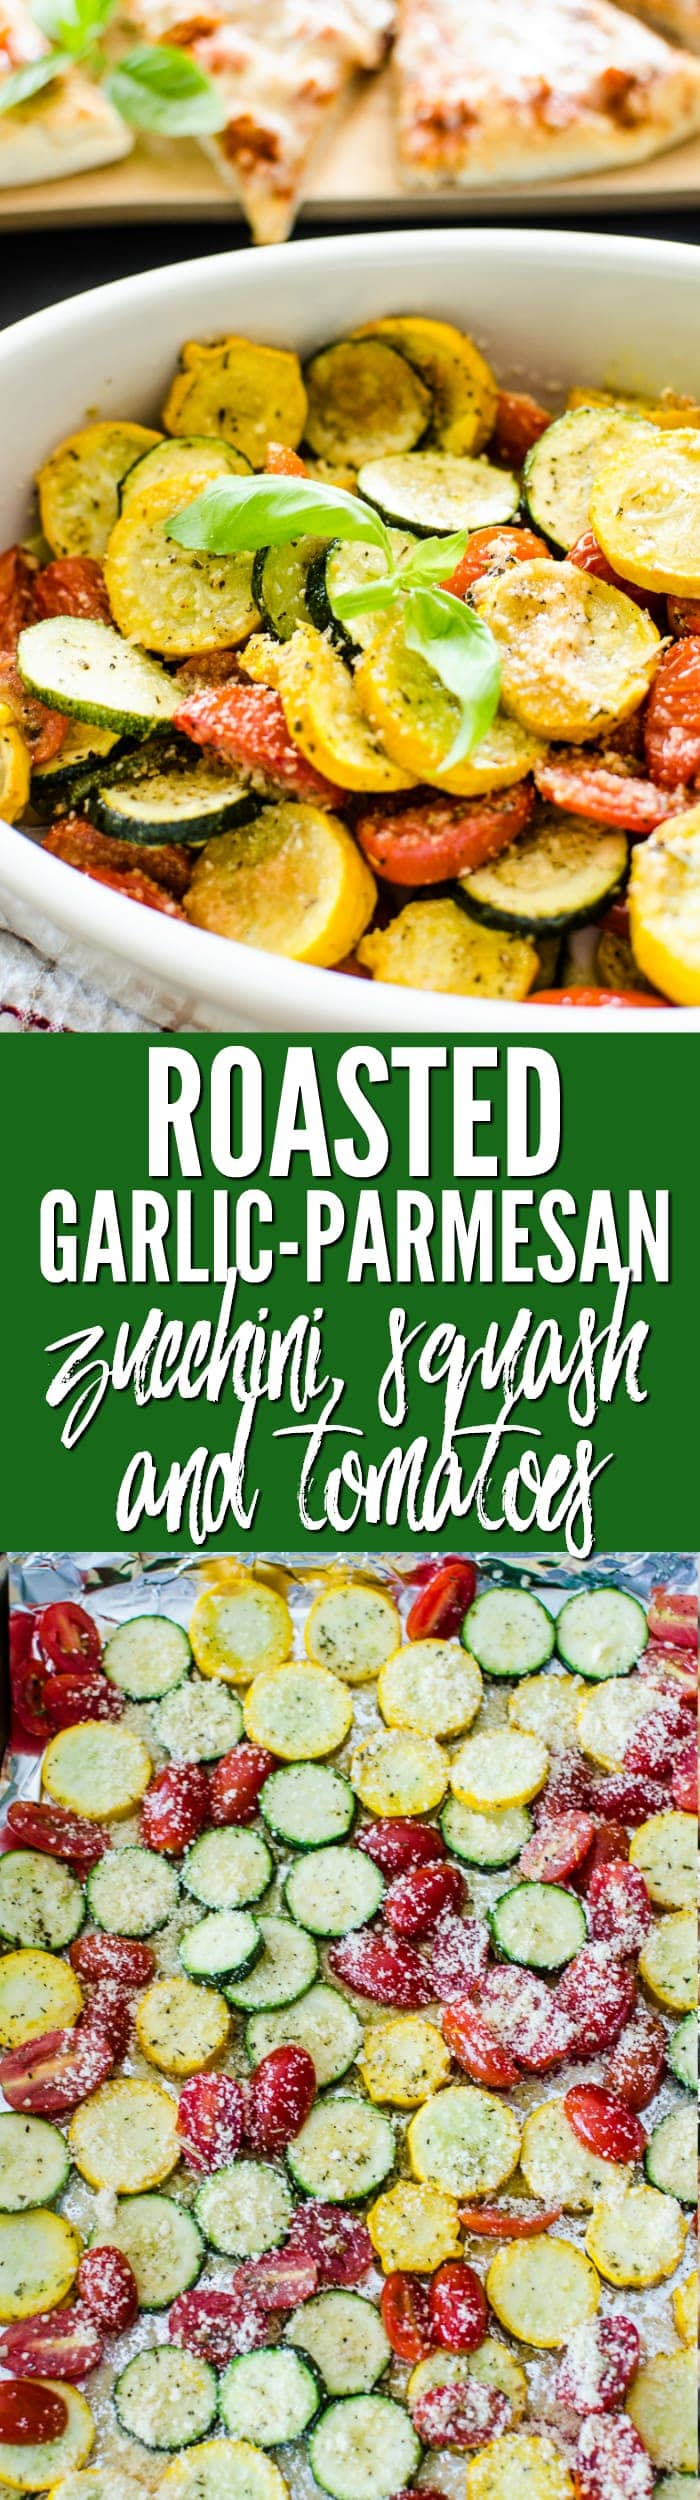 Roasted Garlic-Parmesan Zucchini, Squash and Tomatoes – the perfect side dish for pizza night!